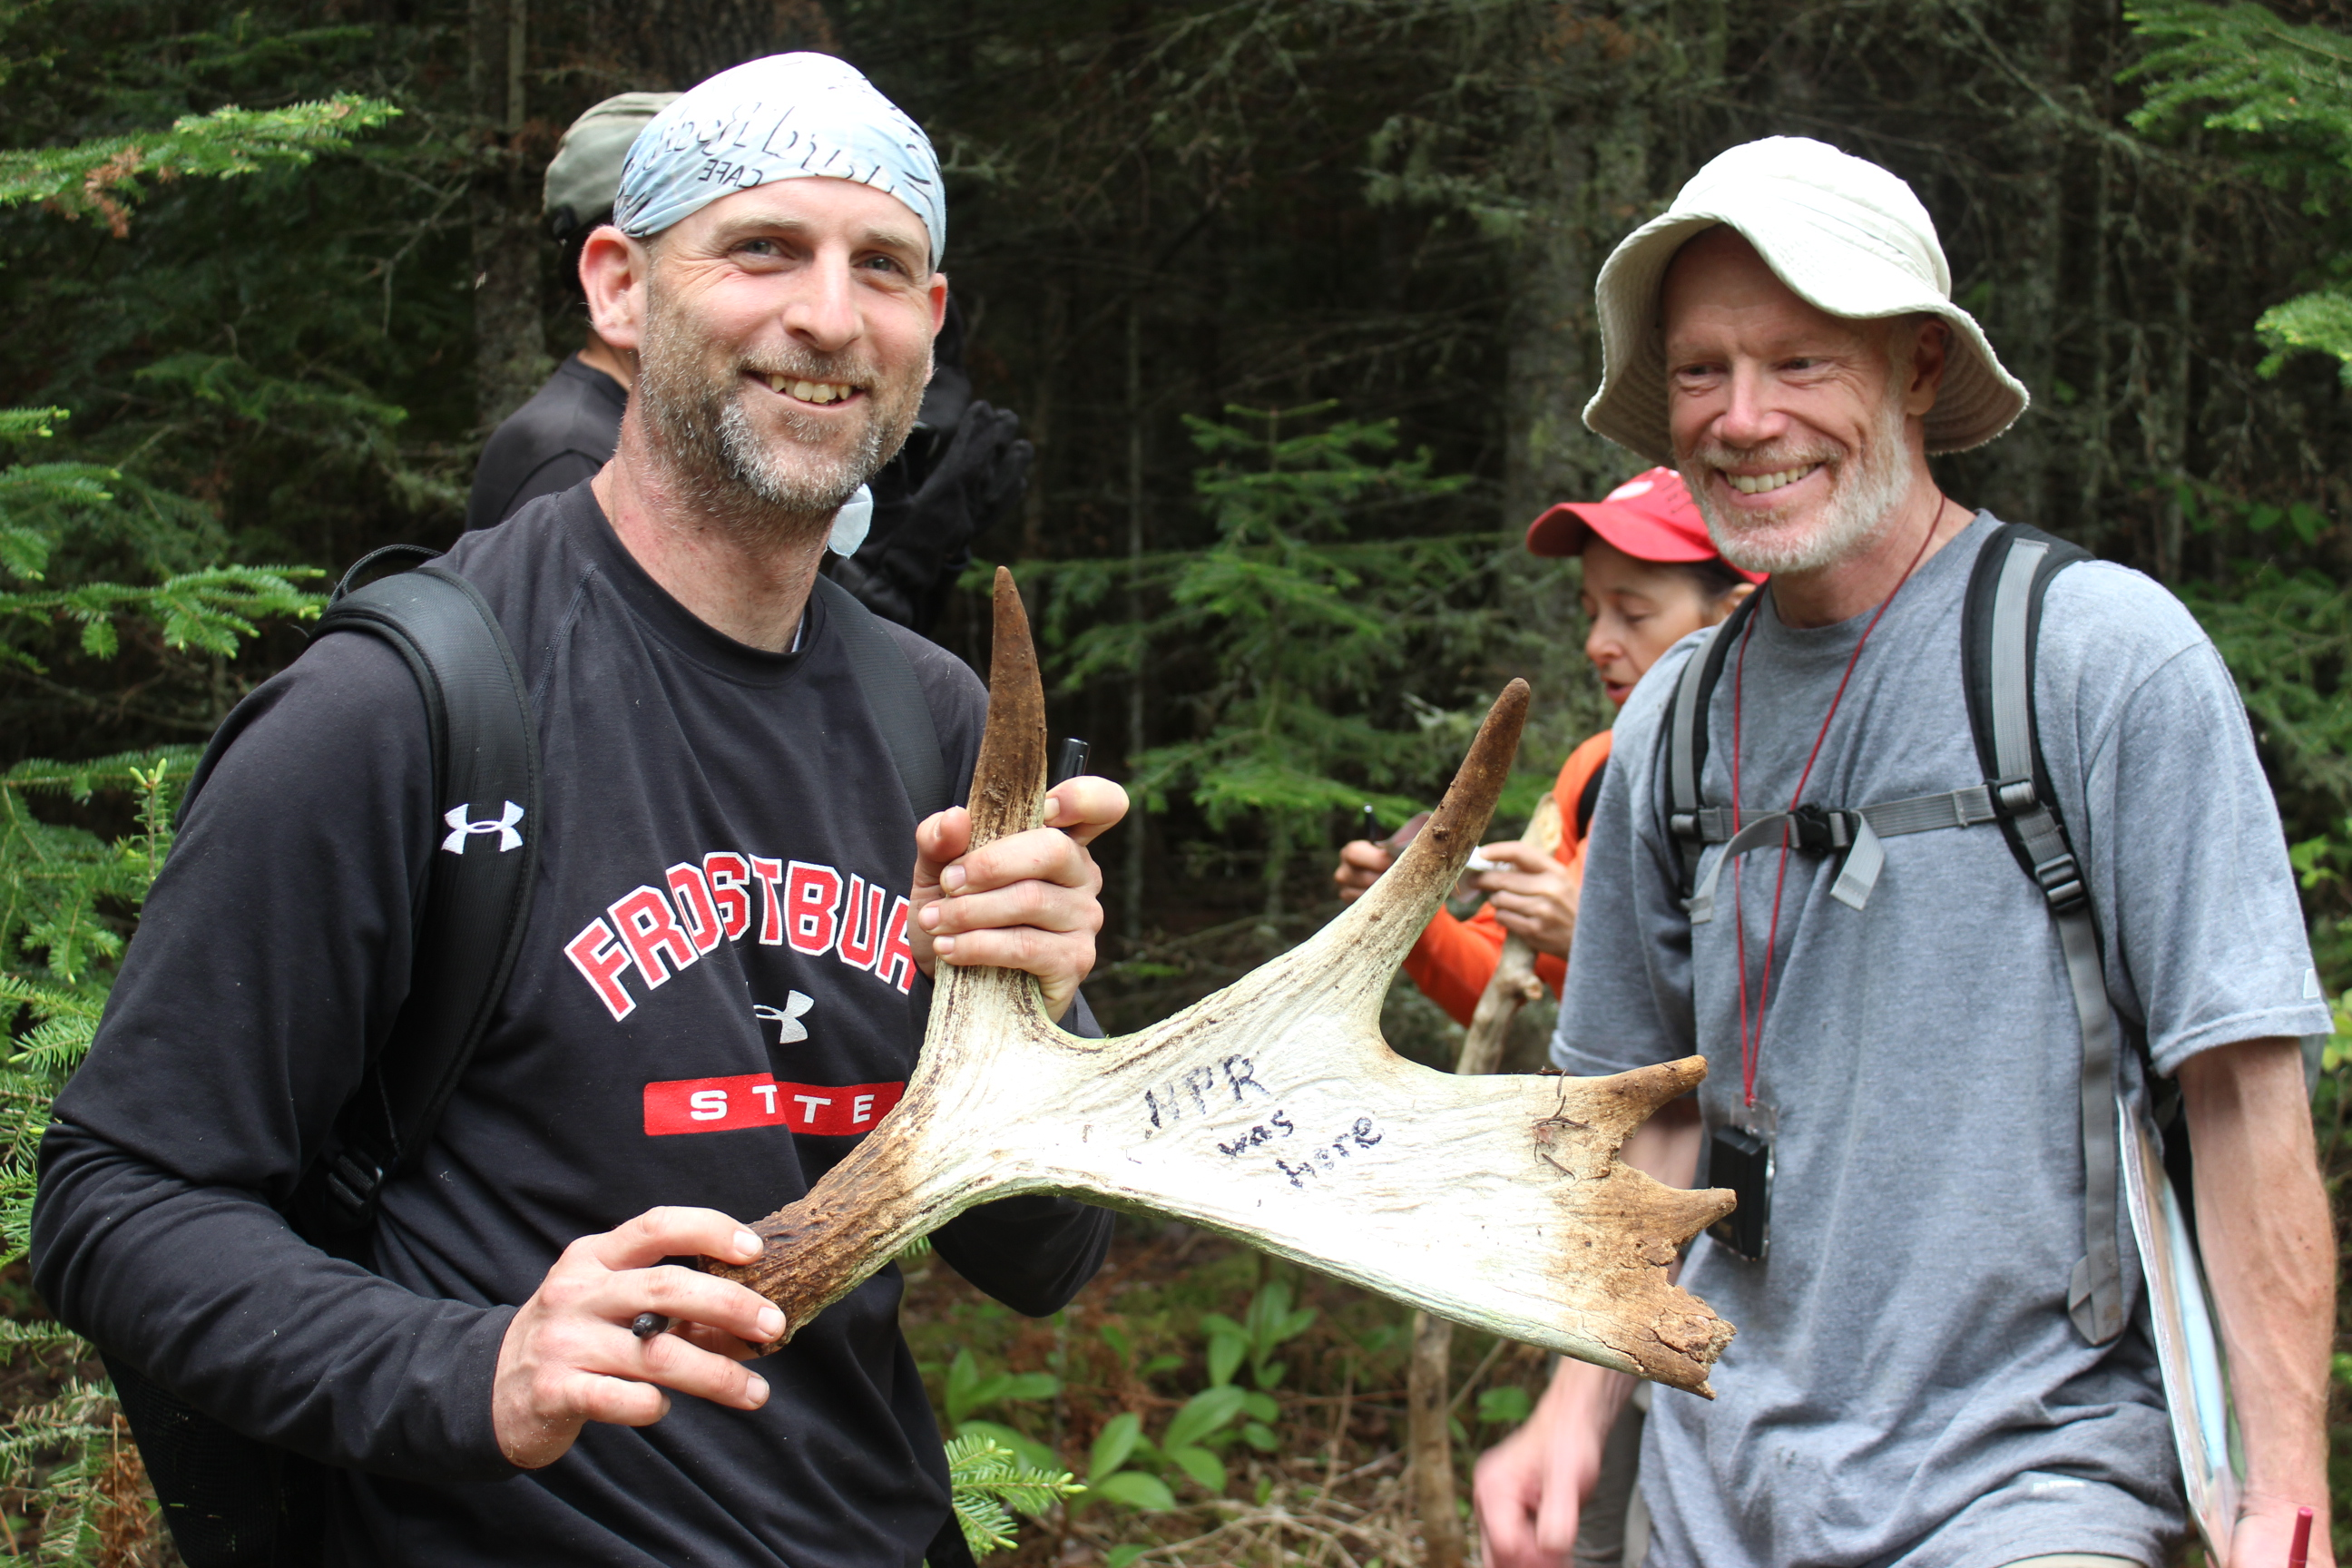 Caption: Moosewatch volunteer Dave Beck holds up a marked antler. Team leader Jeff Holden looks on. They mark the antlers and hang them in a tree so others know the antler has been found and documented., Credit: Mark Brush